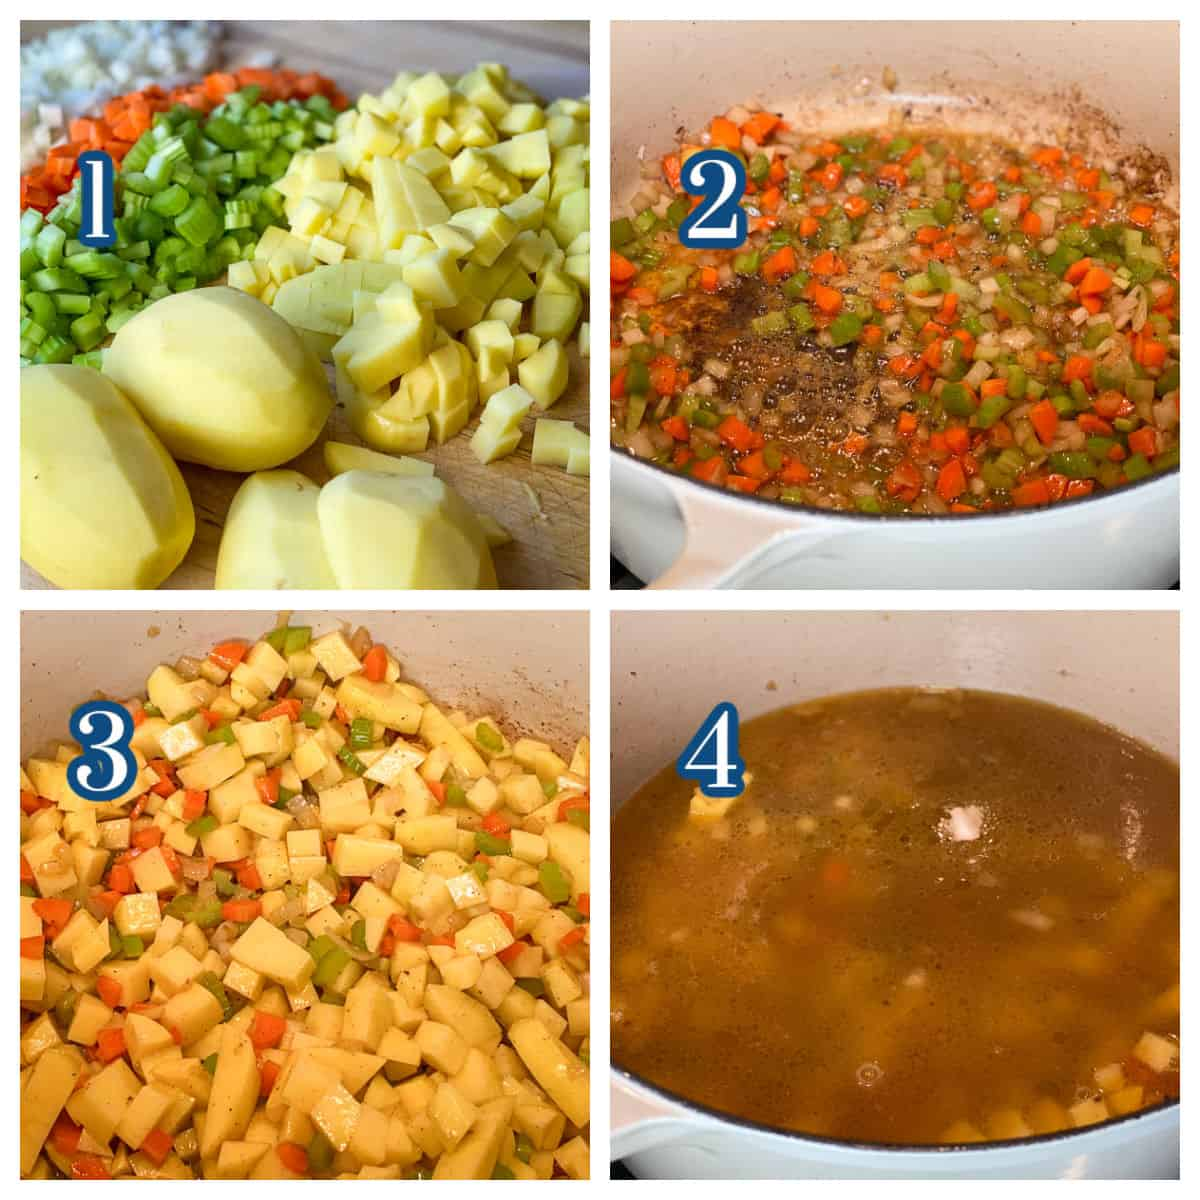 Process collage showing four steps in preparing vegetables for potato soup base.